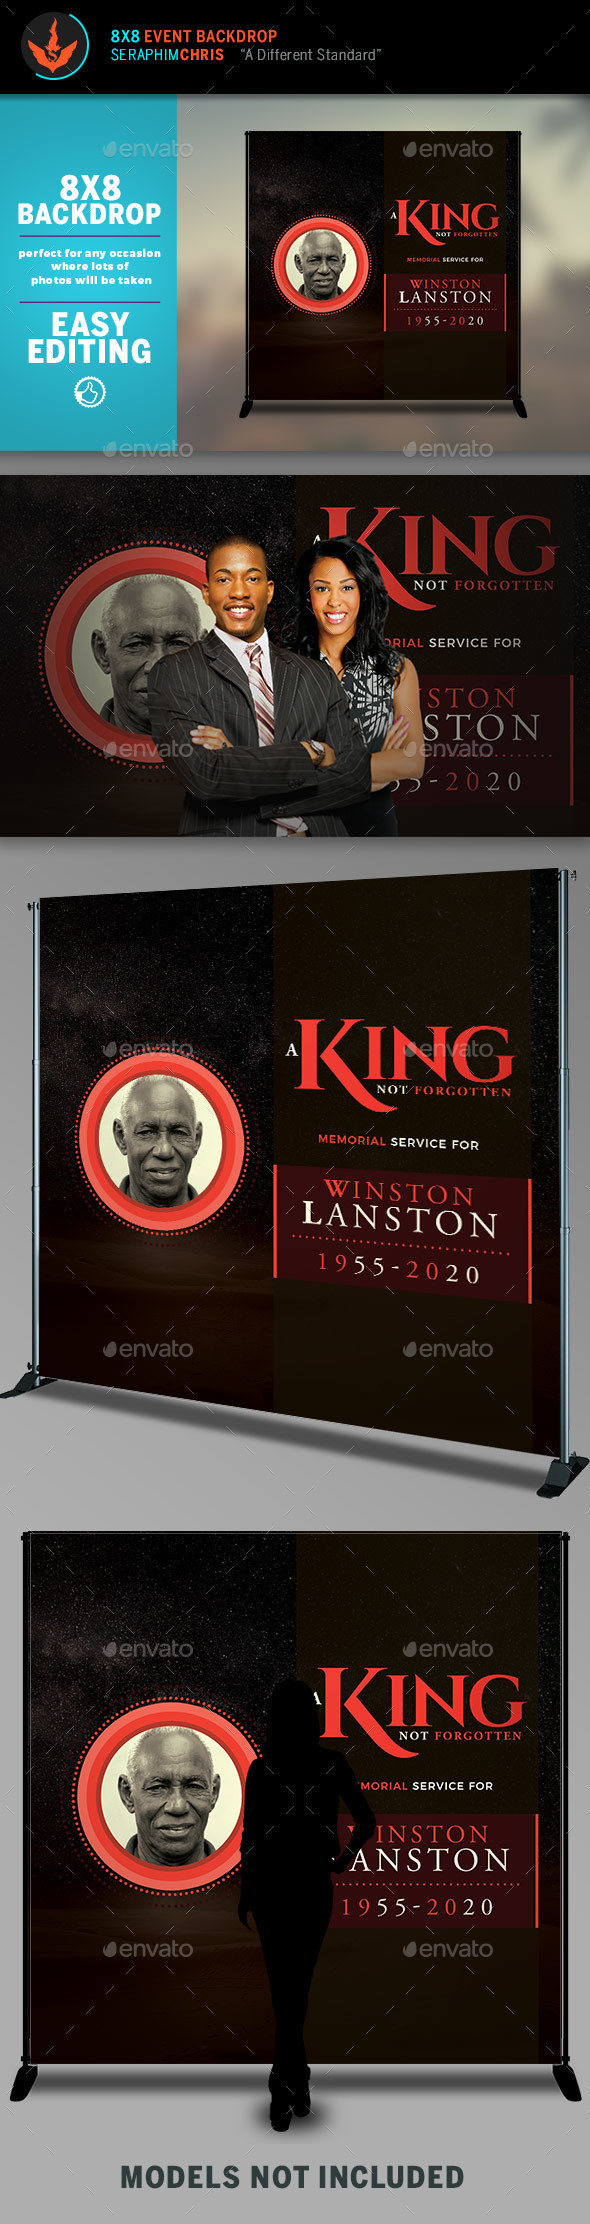 King 8x8 Funeral Backdrop Template - Signage Print Templates